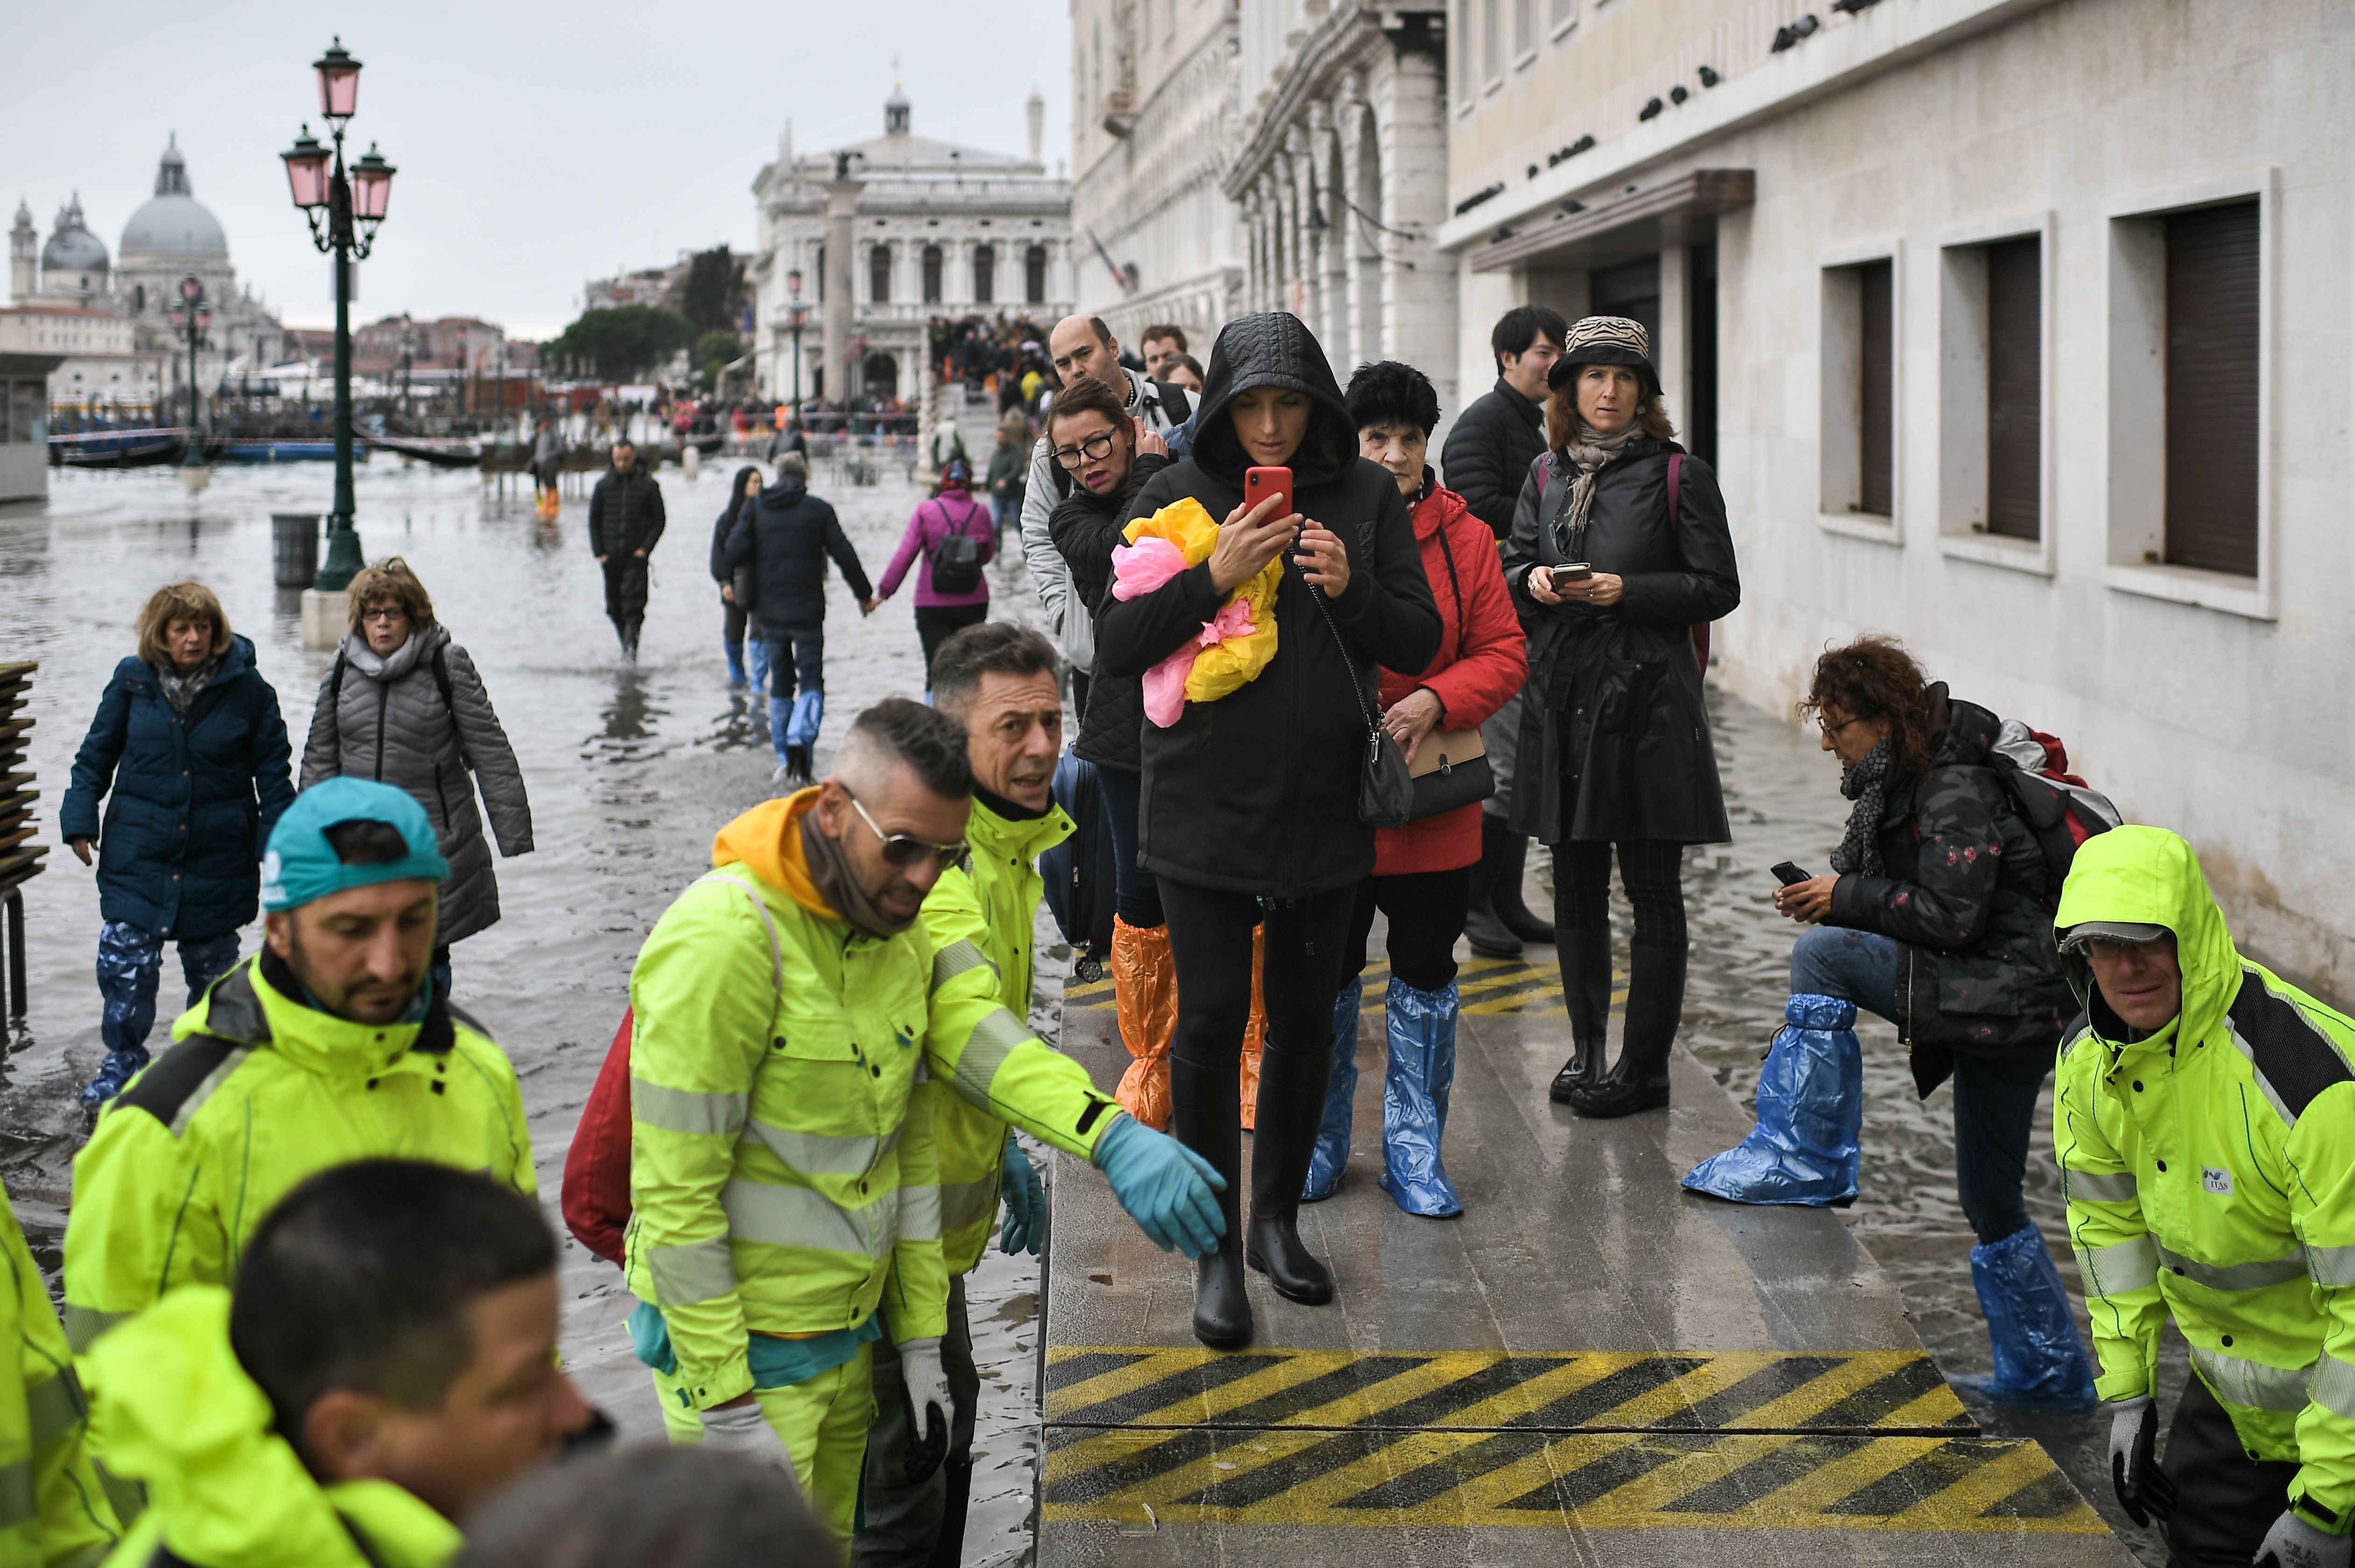 After Venice Floods, Volunteers Wade In To Help Salvage What They Can